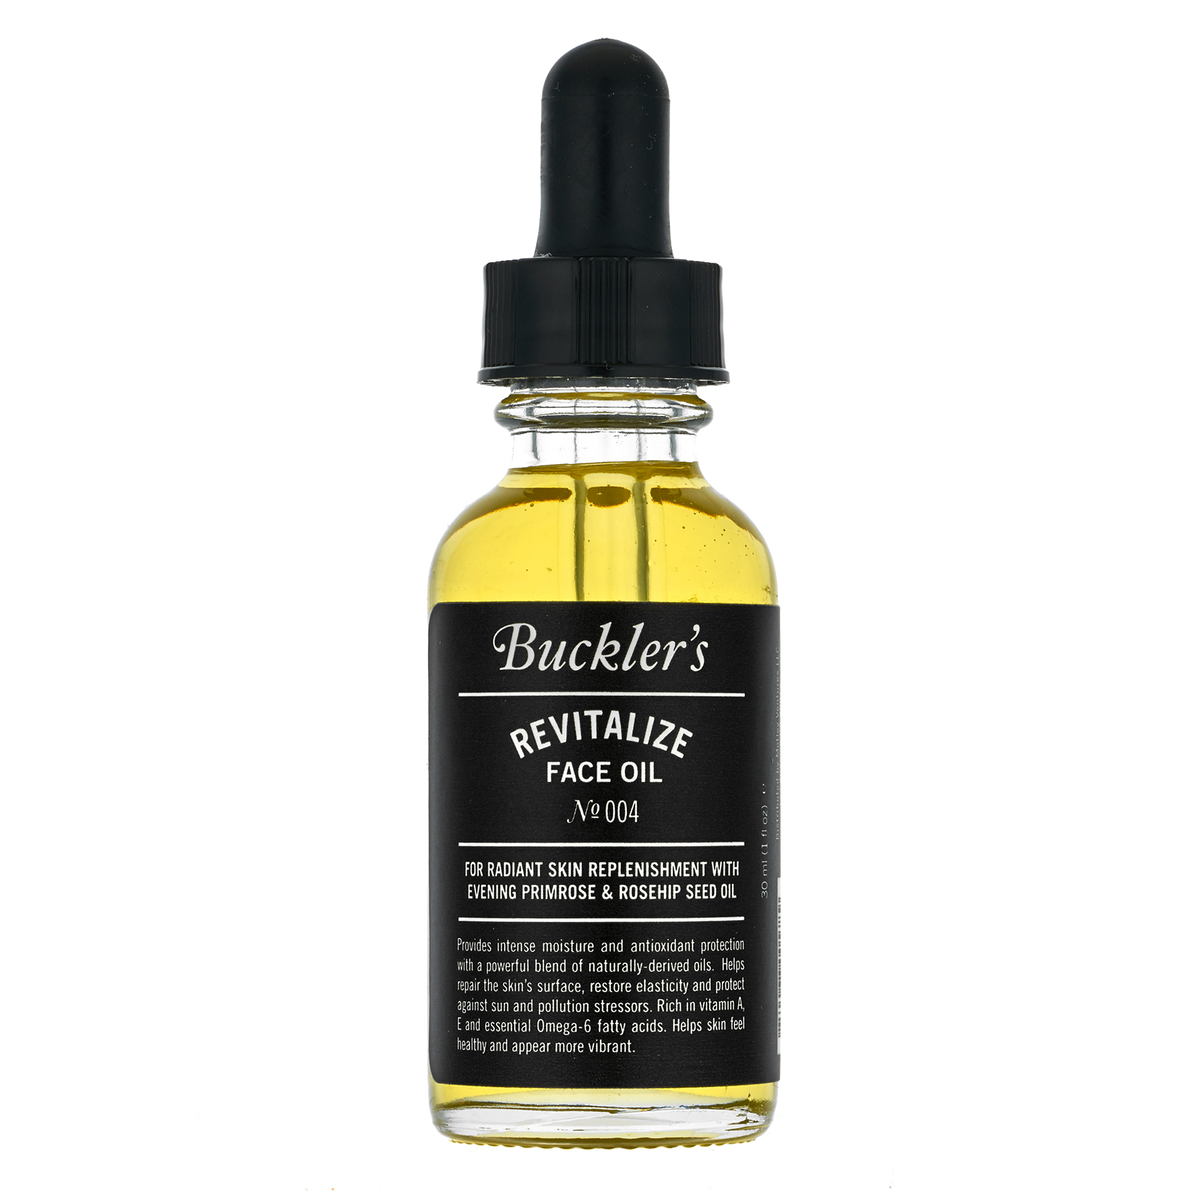 Buckler's Revitalize Face Oil